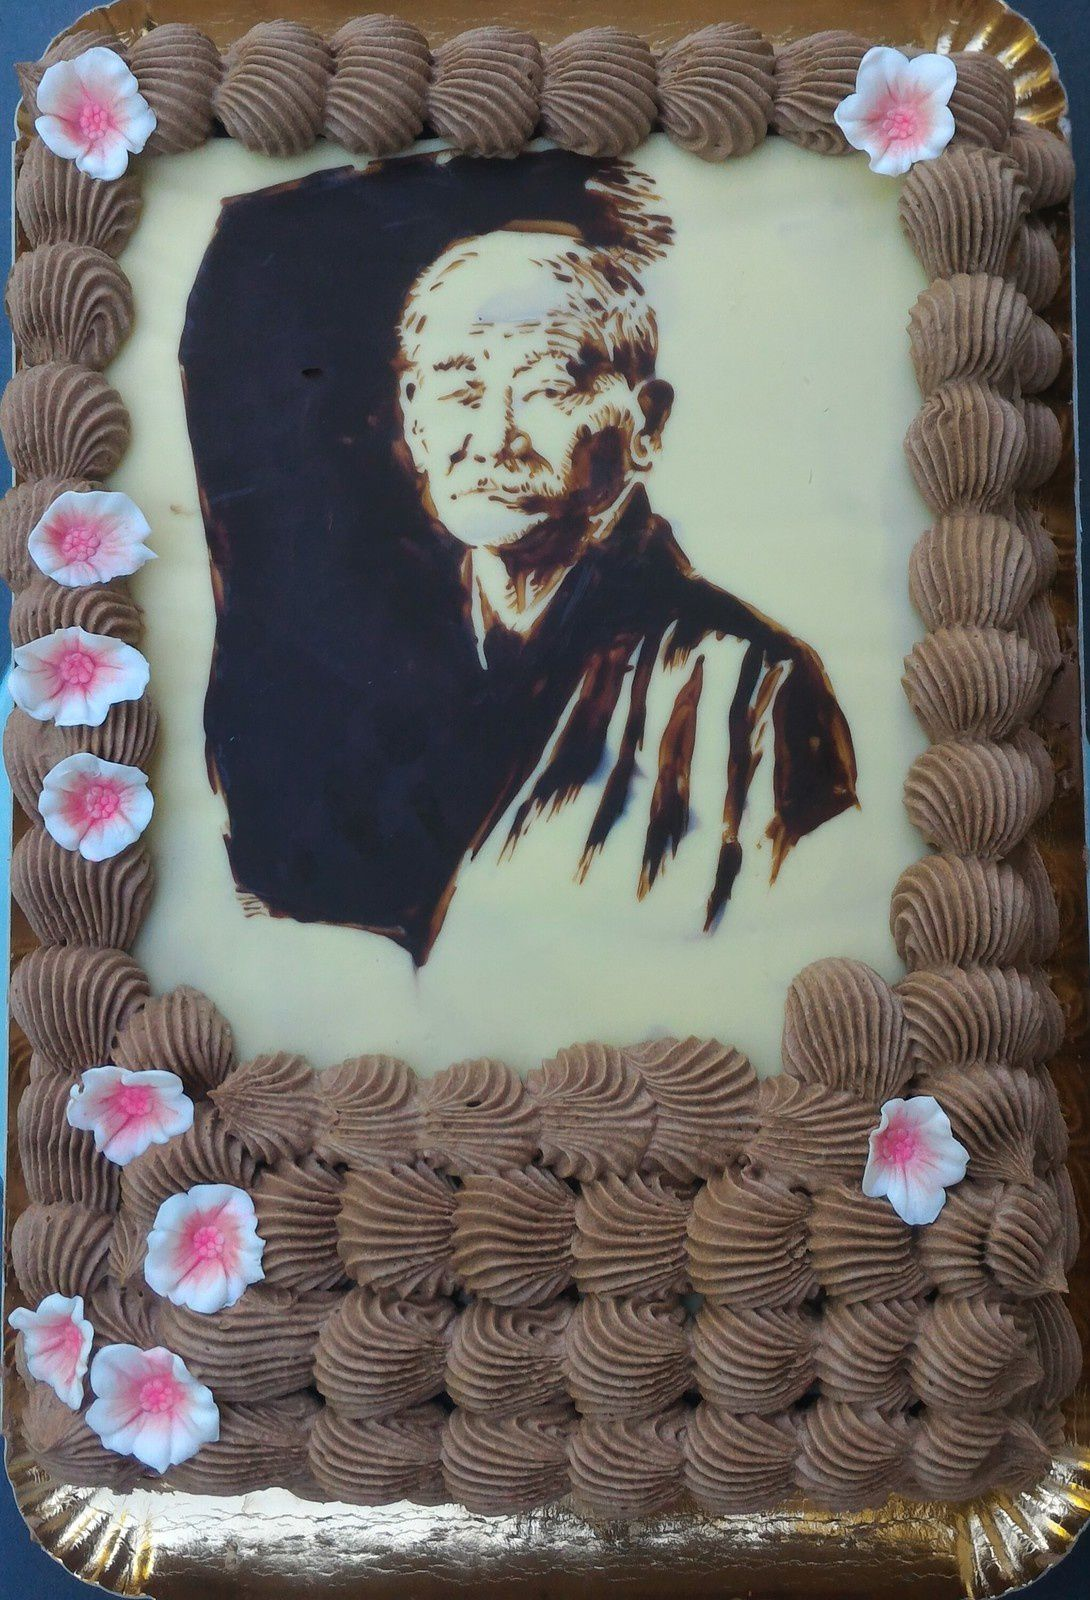 GATEAU JIGORO KANO - JUDO - TECHNIQUE DU WINDOWS COLOR